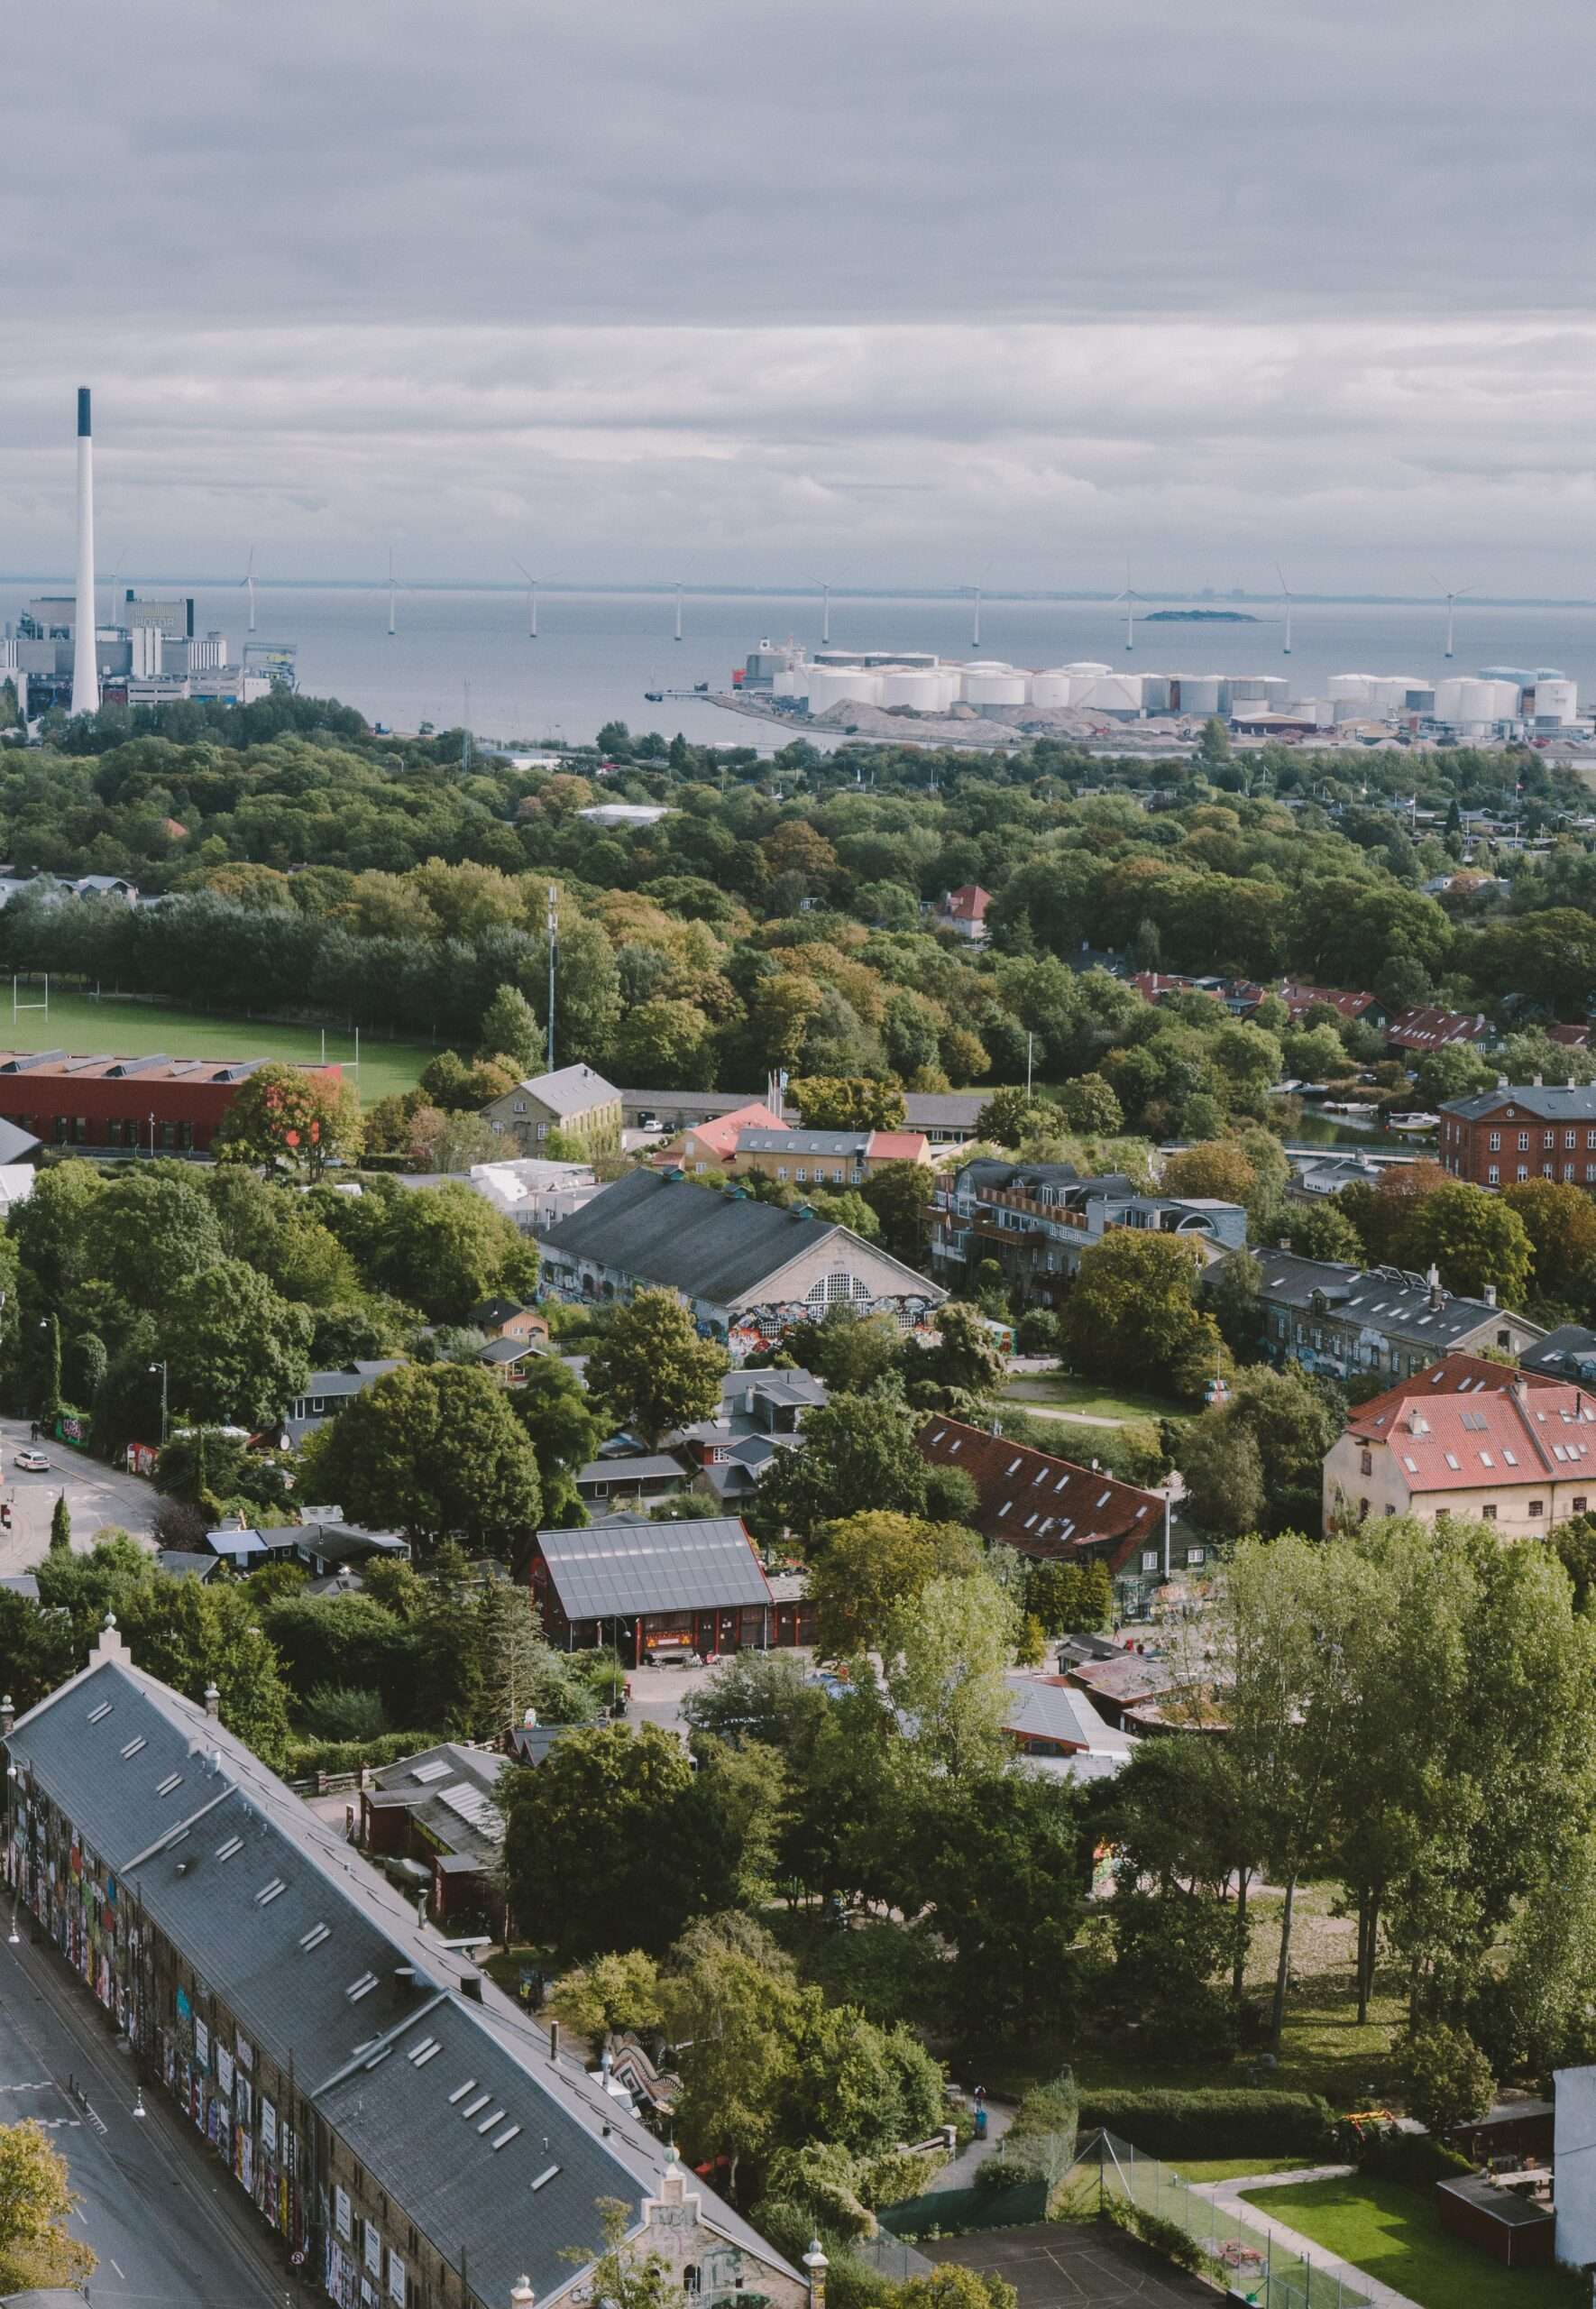 Aerial view of Freetown Christiania. Visiting here is one of the best things to do in Copenhagen